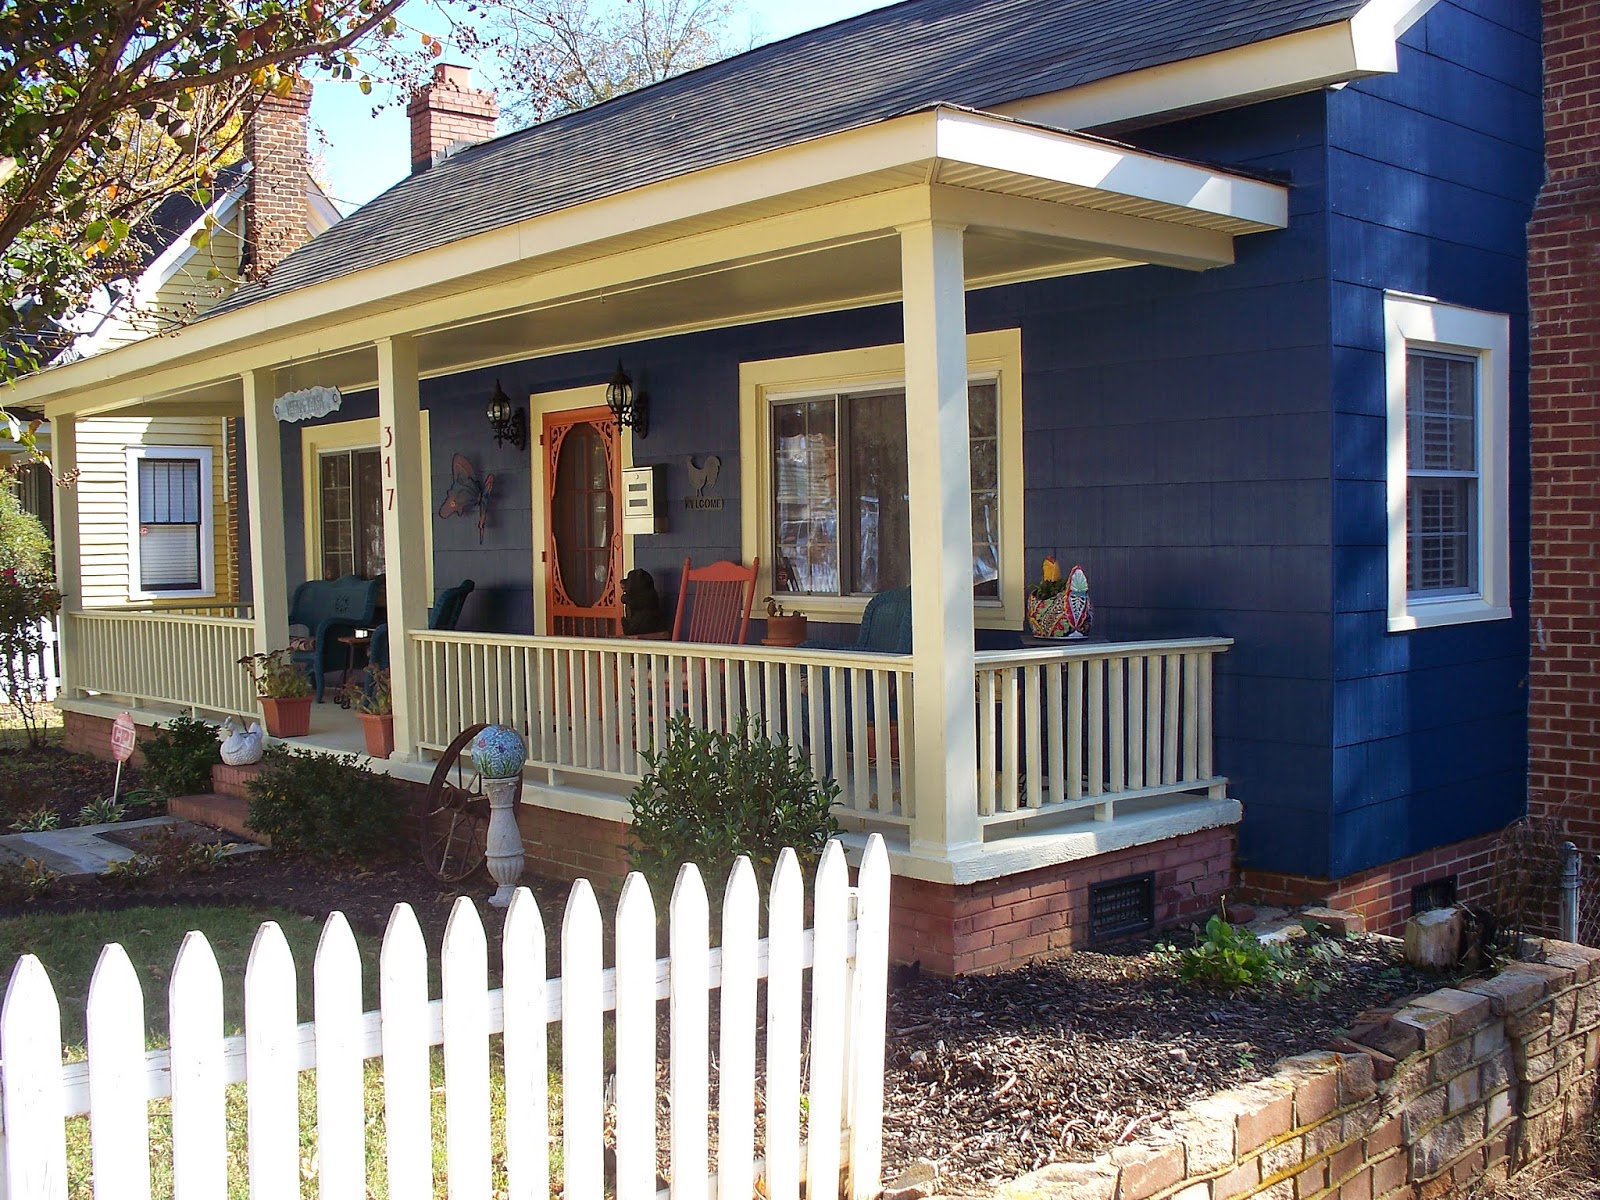 Salisbury north carolina real estate picture perfect for Perfect cottage